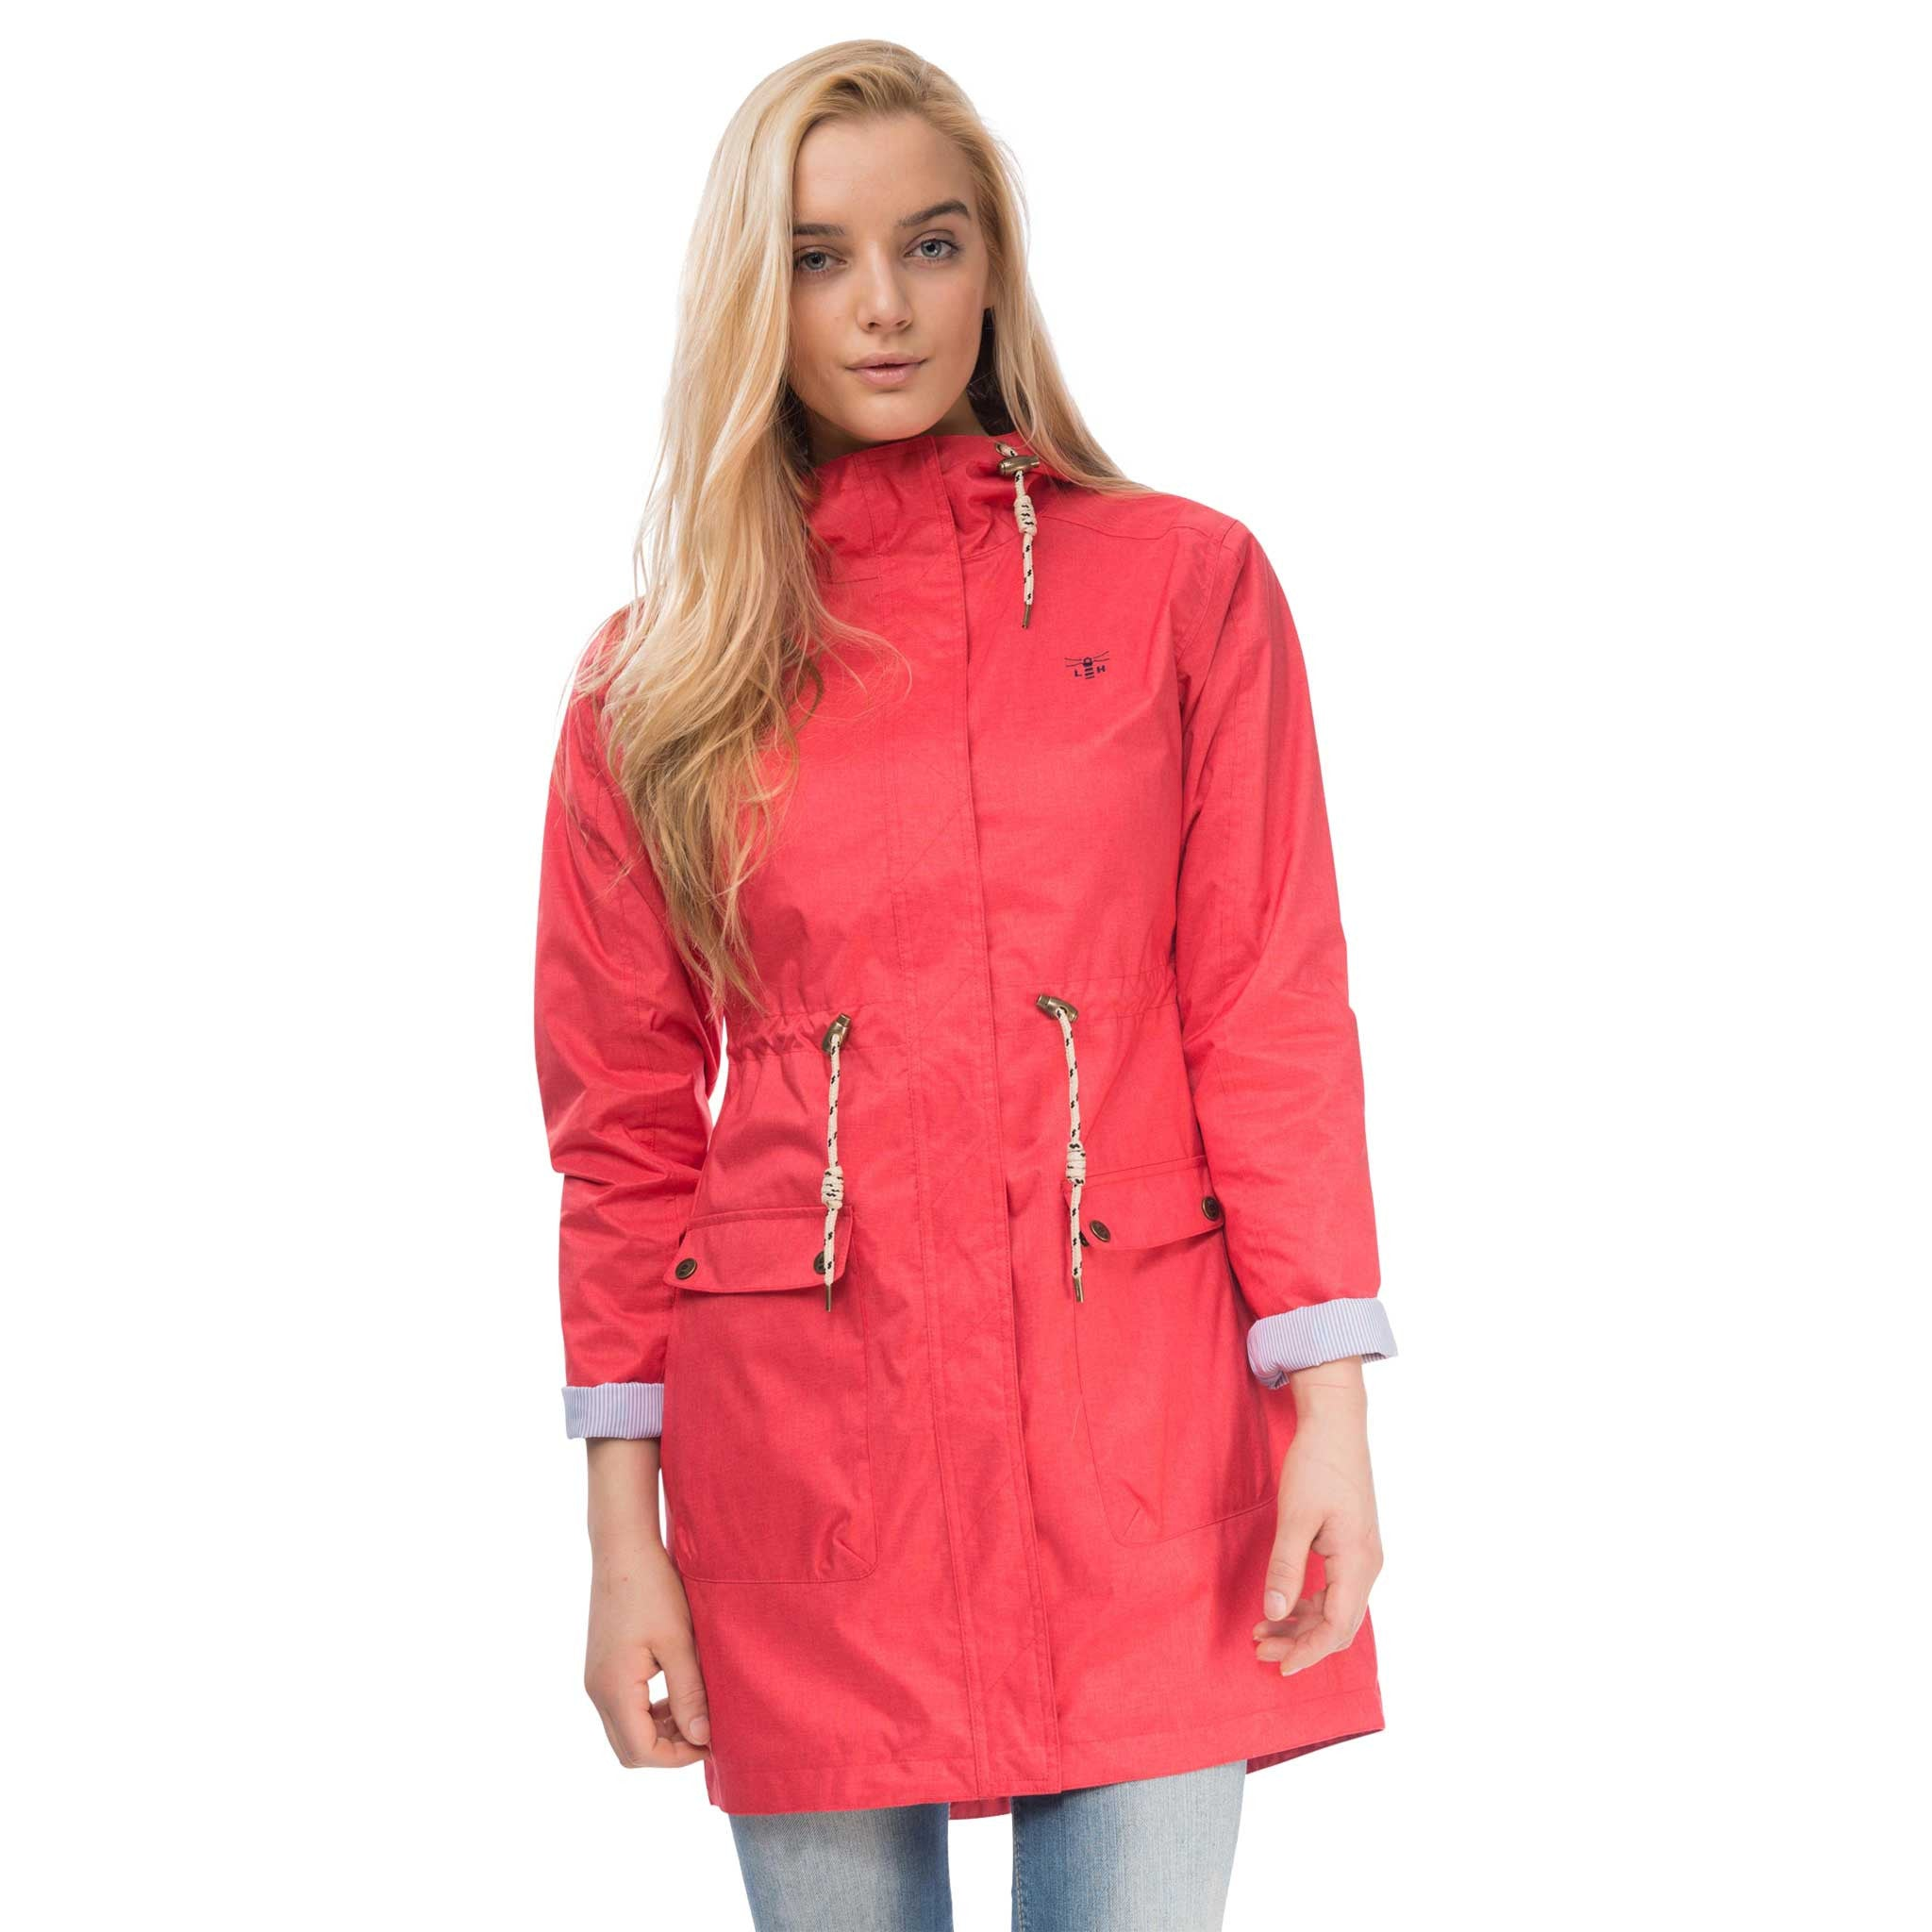 Fayda Womens Waterproof Parka in Watermelon Red with Cuffs Up, Modelled Front View | Lighthouse